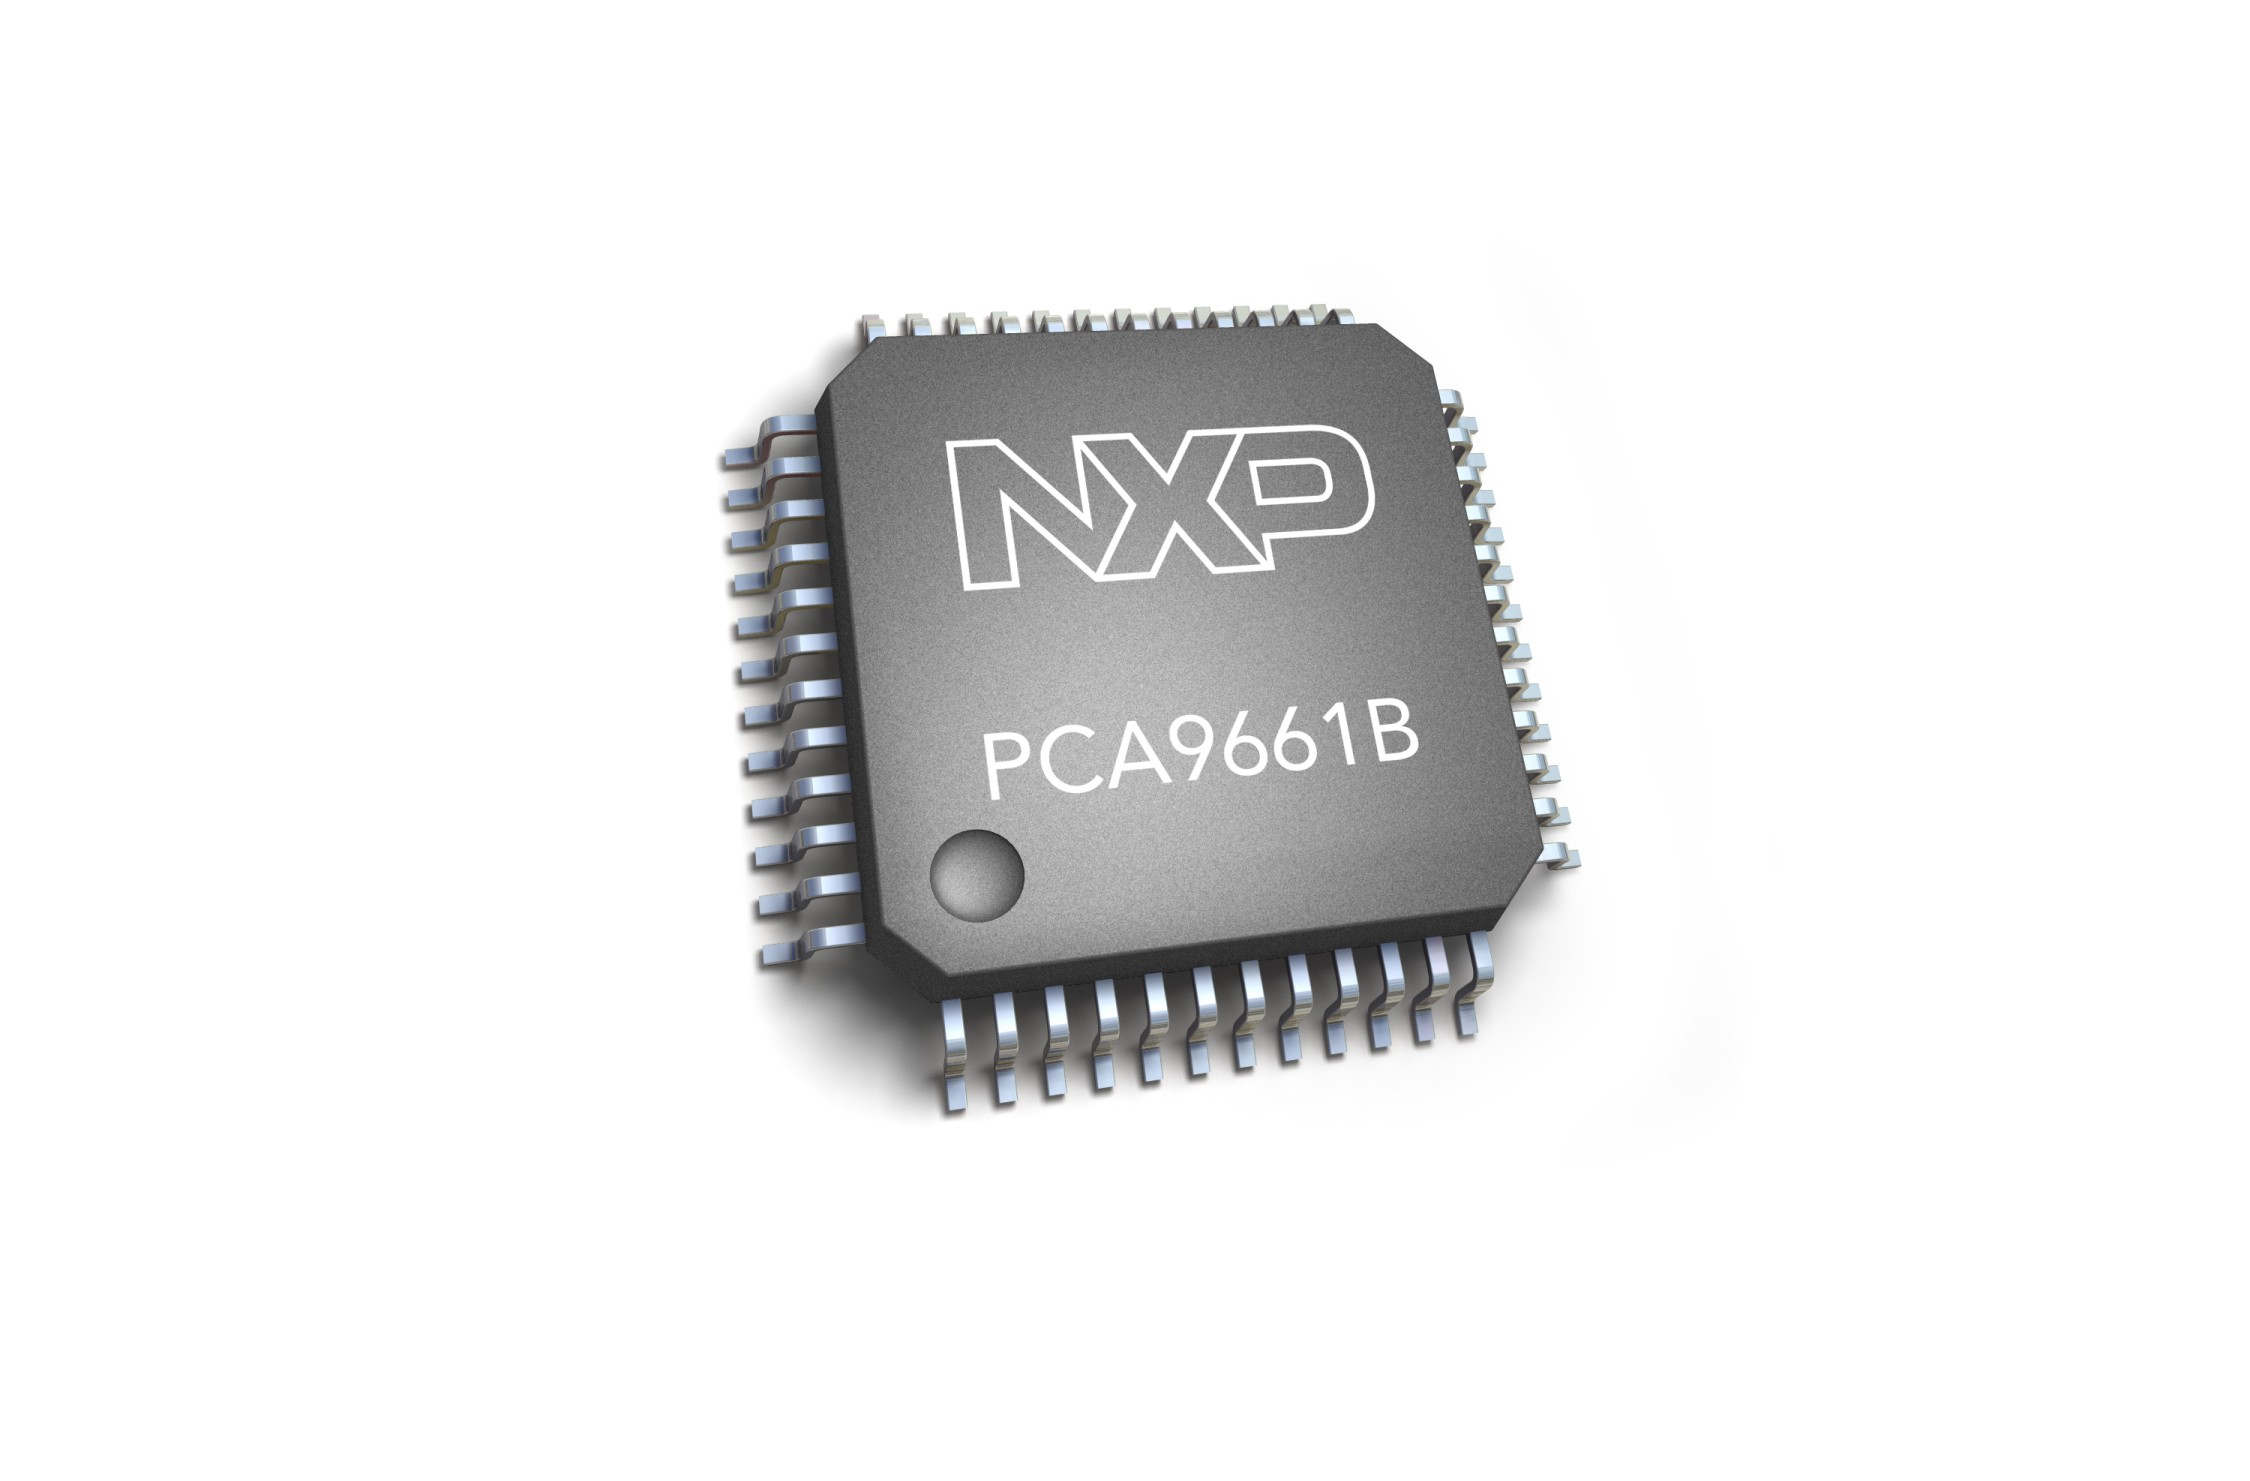 tapwage nxp semiconductors pdf - HD 2250×1481